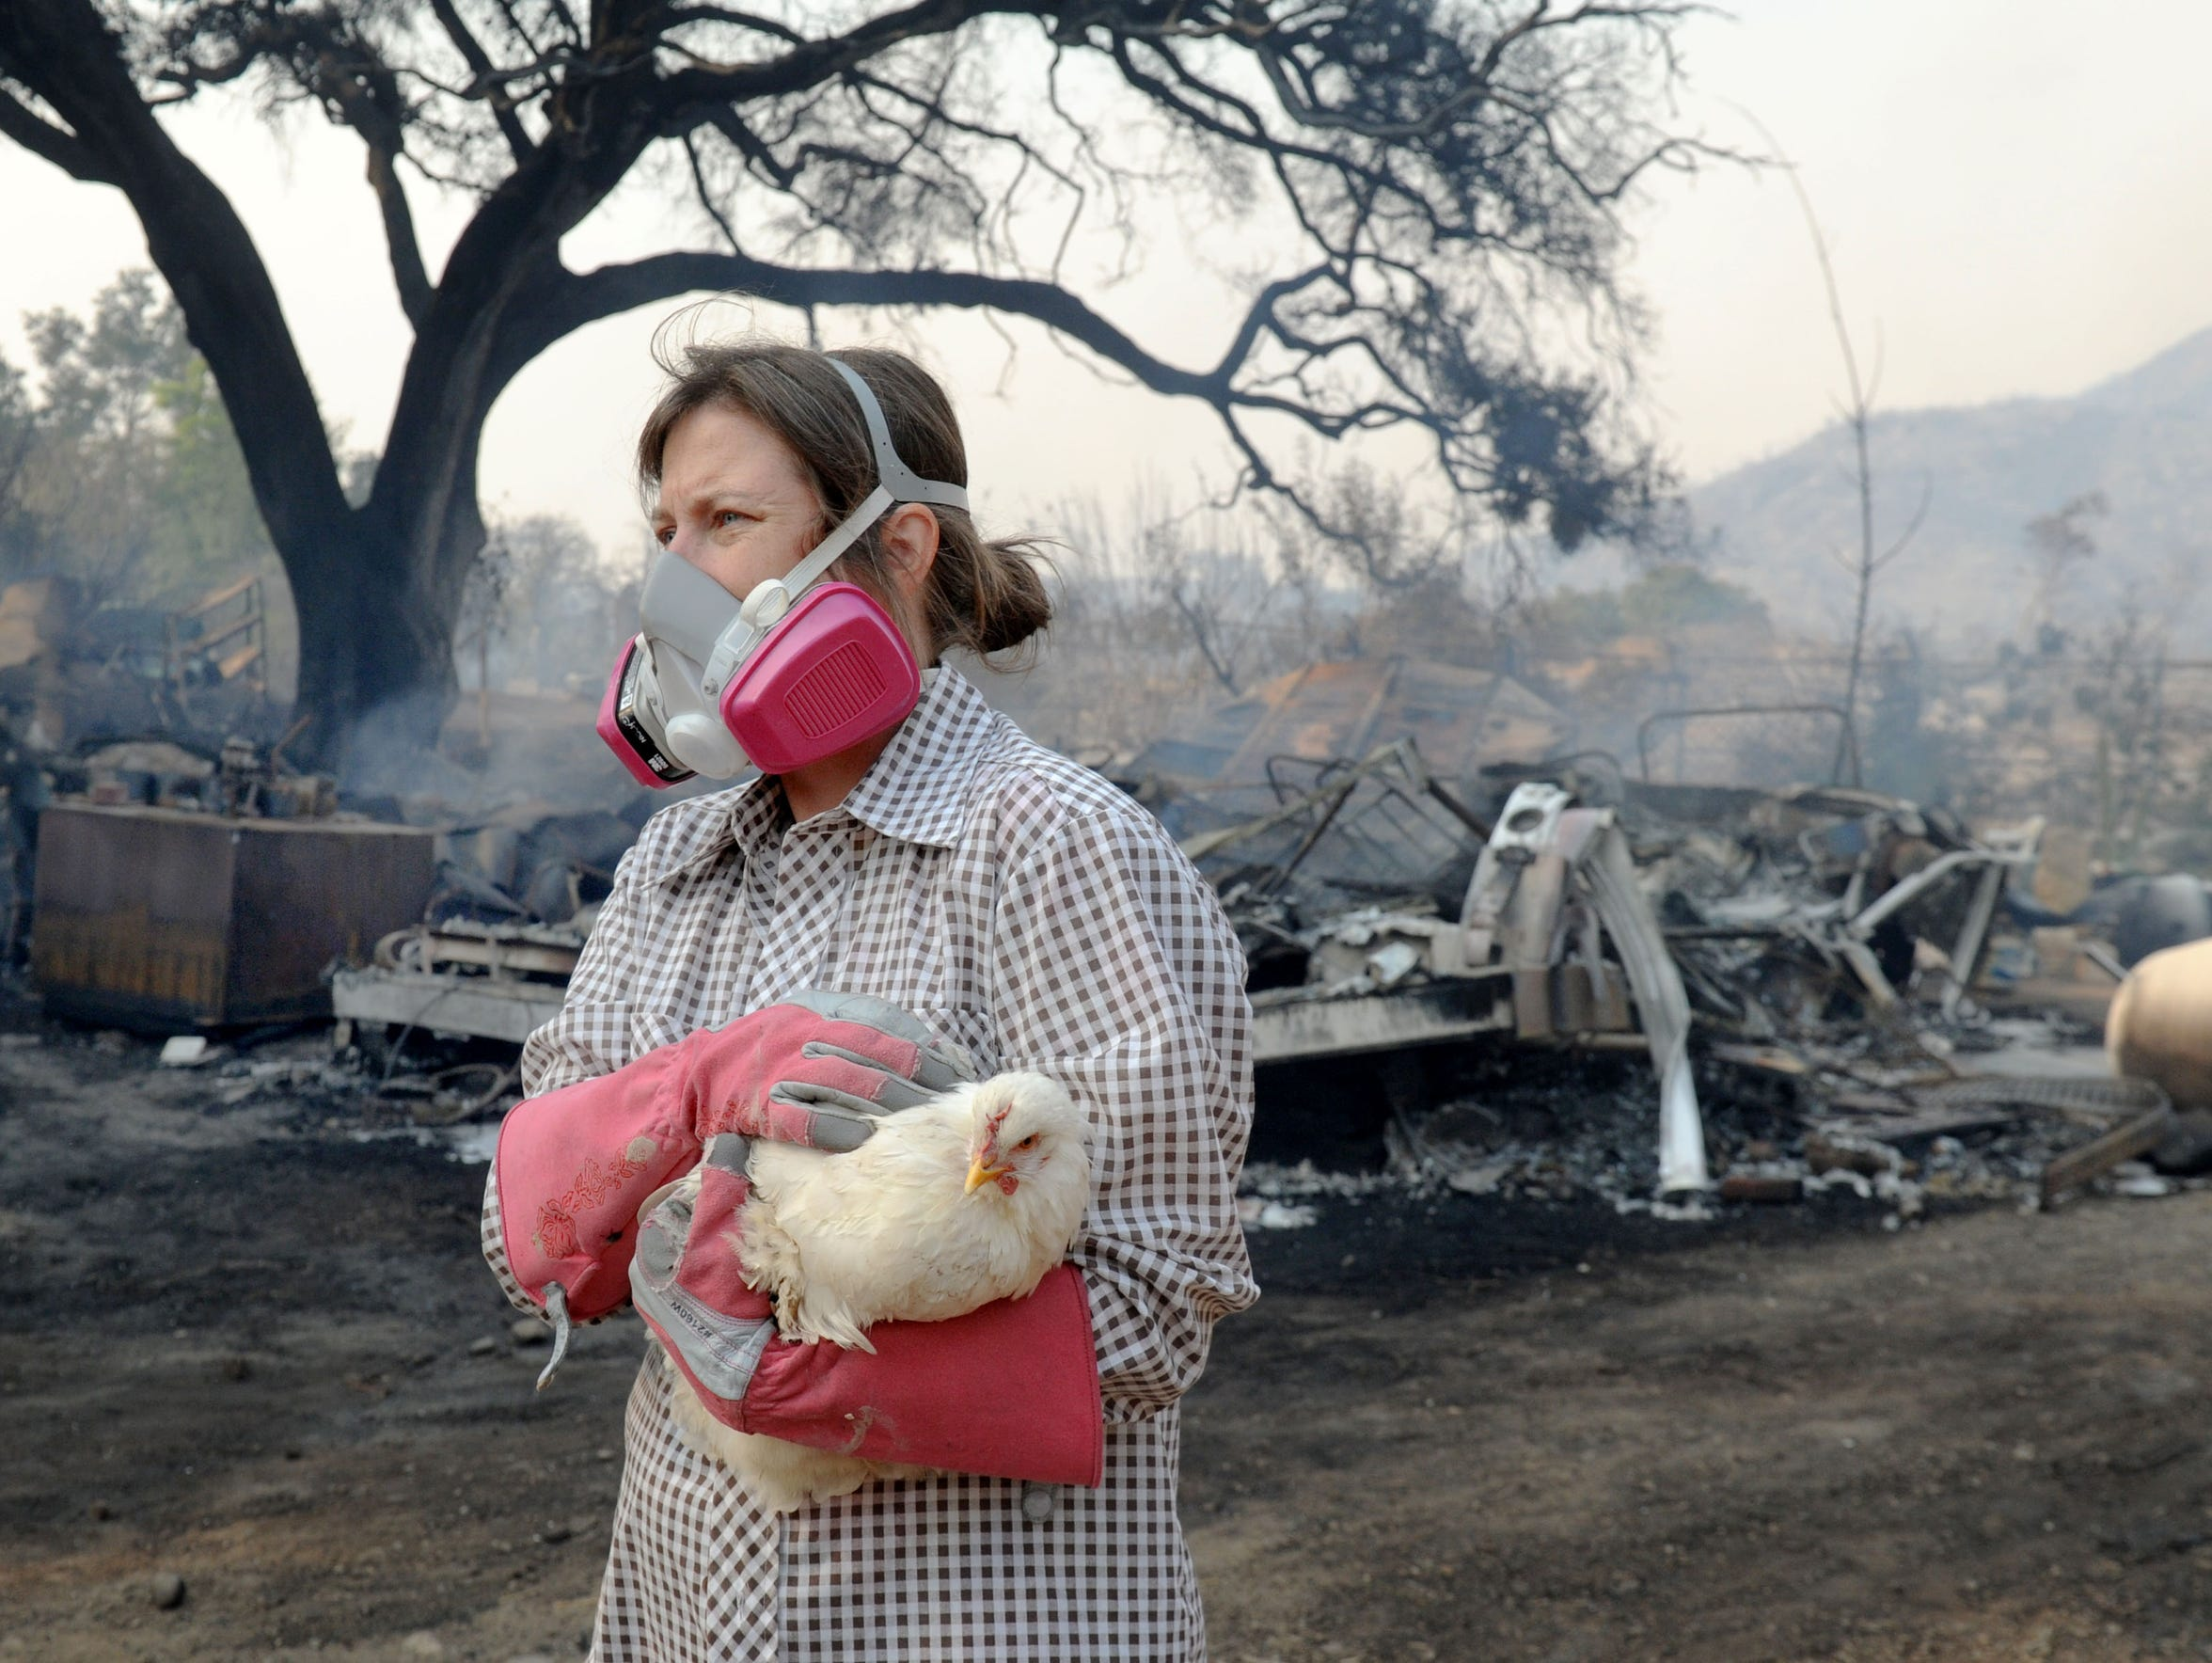 Jennifer Day carries a chicken at a property burned by the Thomas Fire along Rice Road in Ojai.